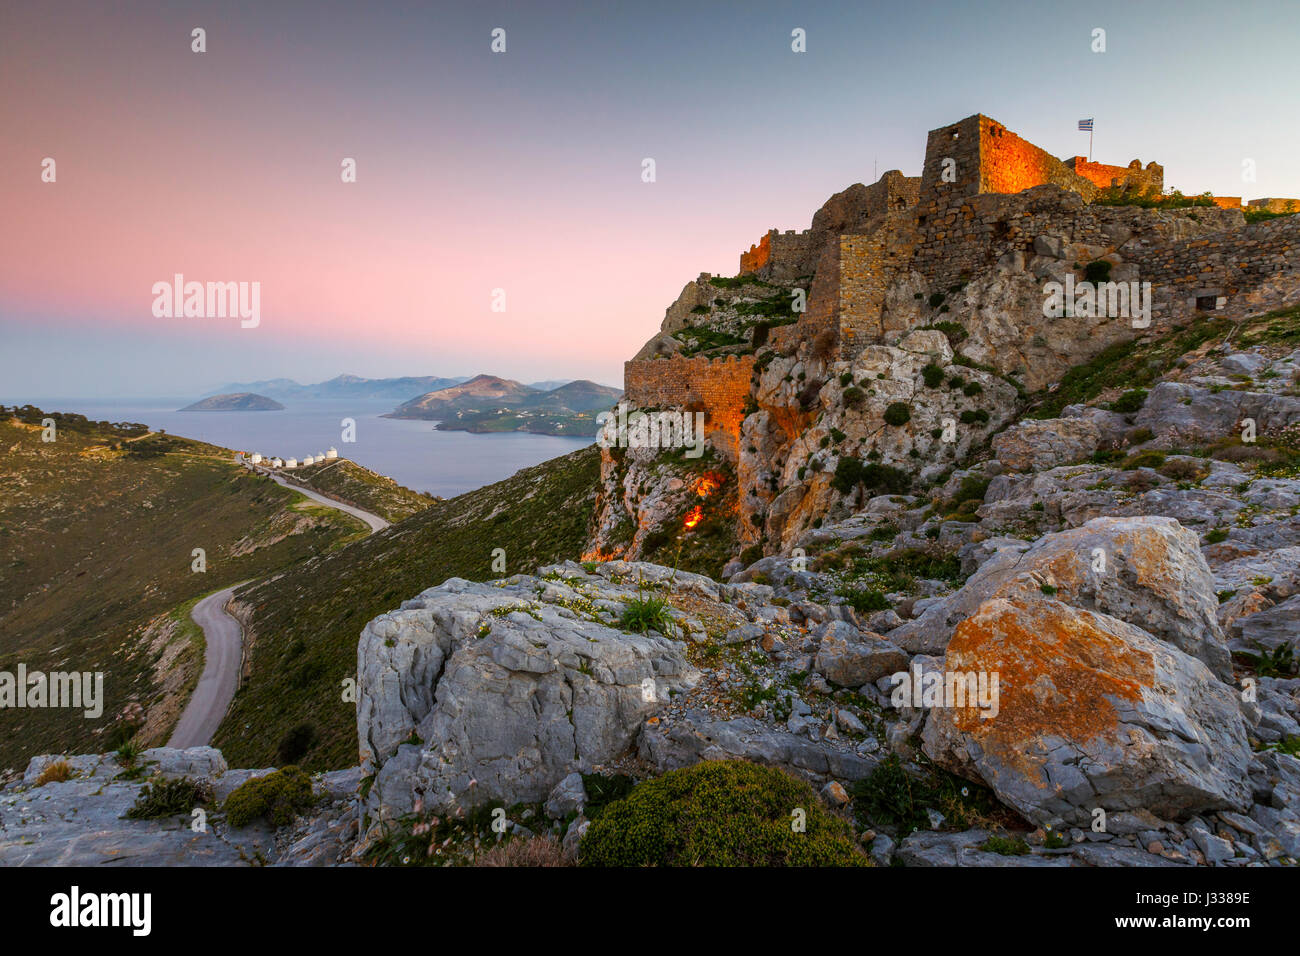 Castle on Leros island in Greece at sunset. - Stock Image